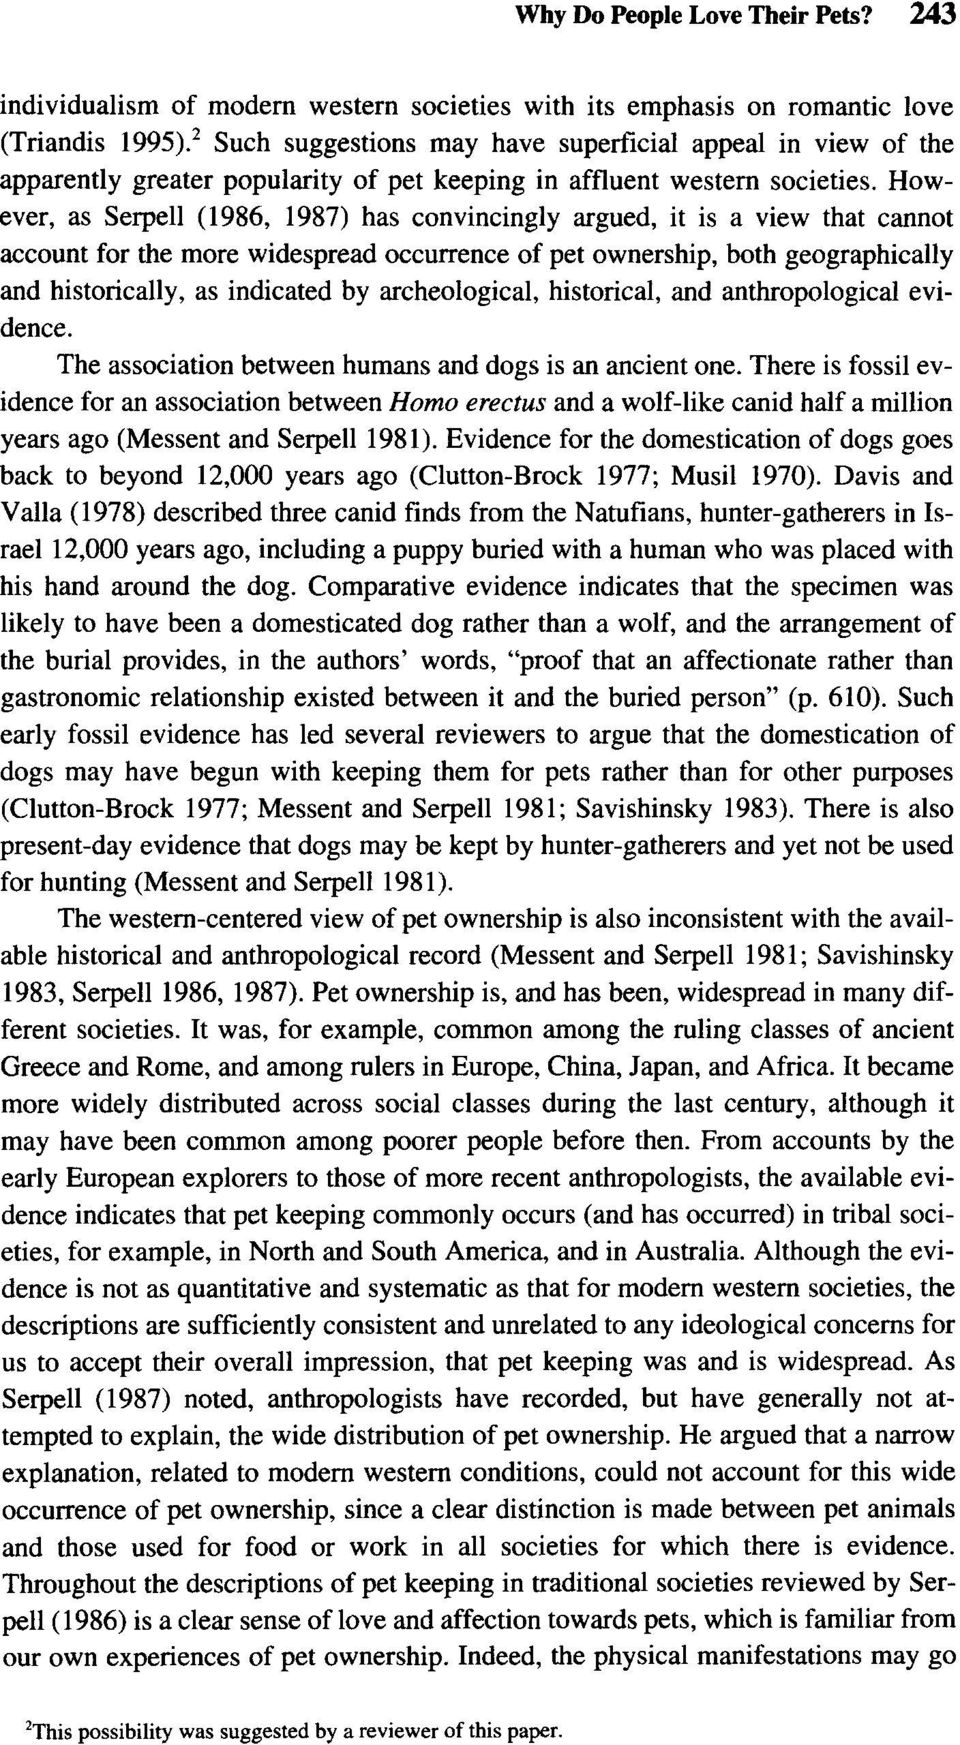 However, as Serpell (1986, 1987) has convincingly argued, it is a view that cannot account for the more widespread occurrence of pet ownership, both geographically and historically, as indicated by